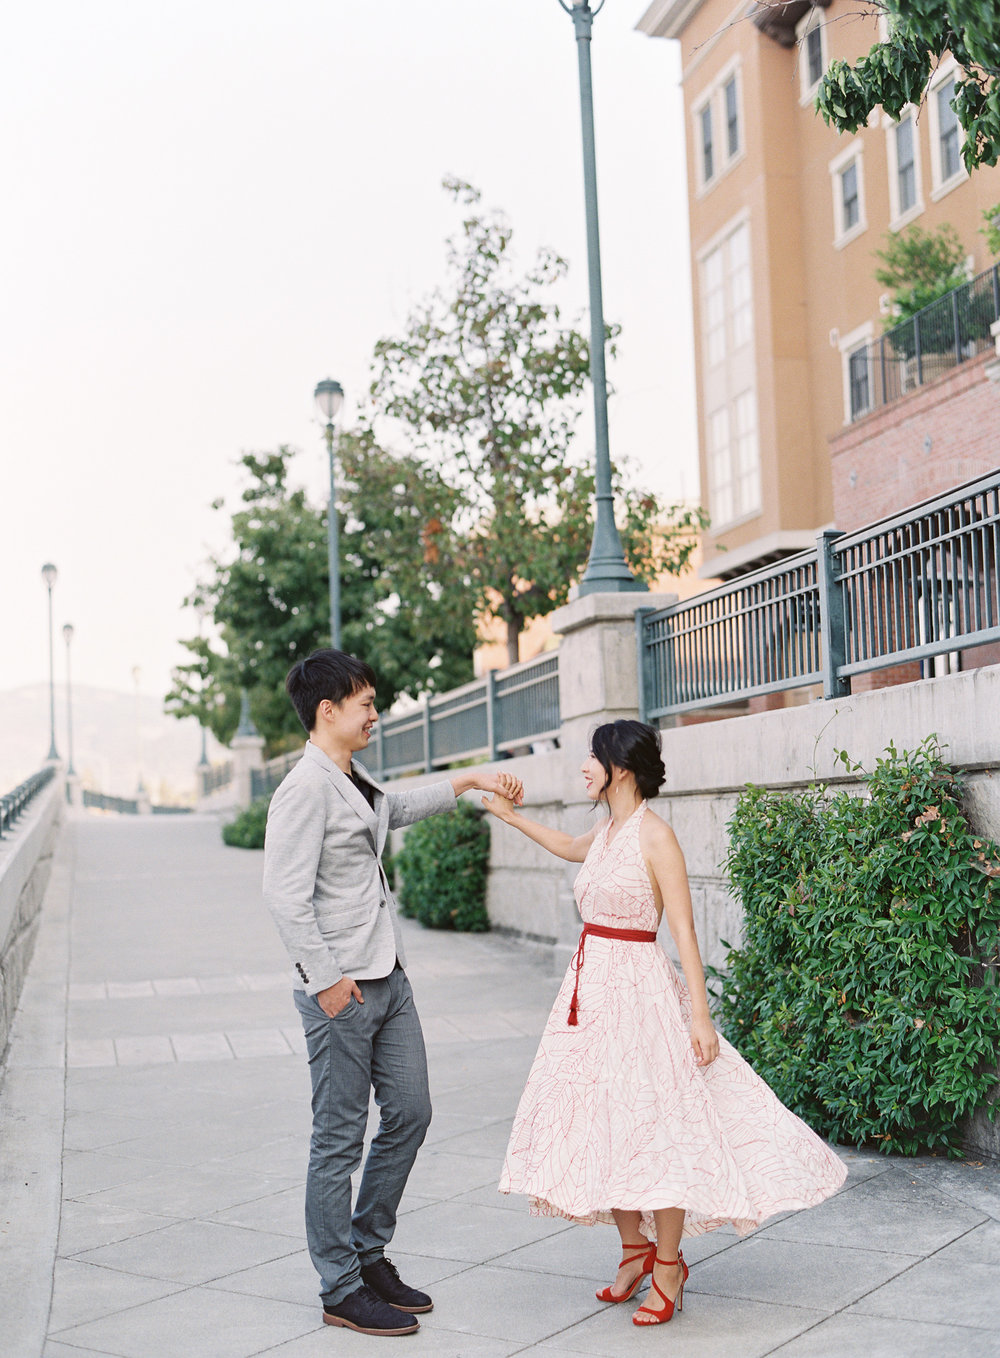 Napa-California-engagement-session-31.jpg